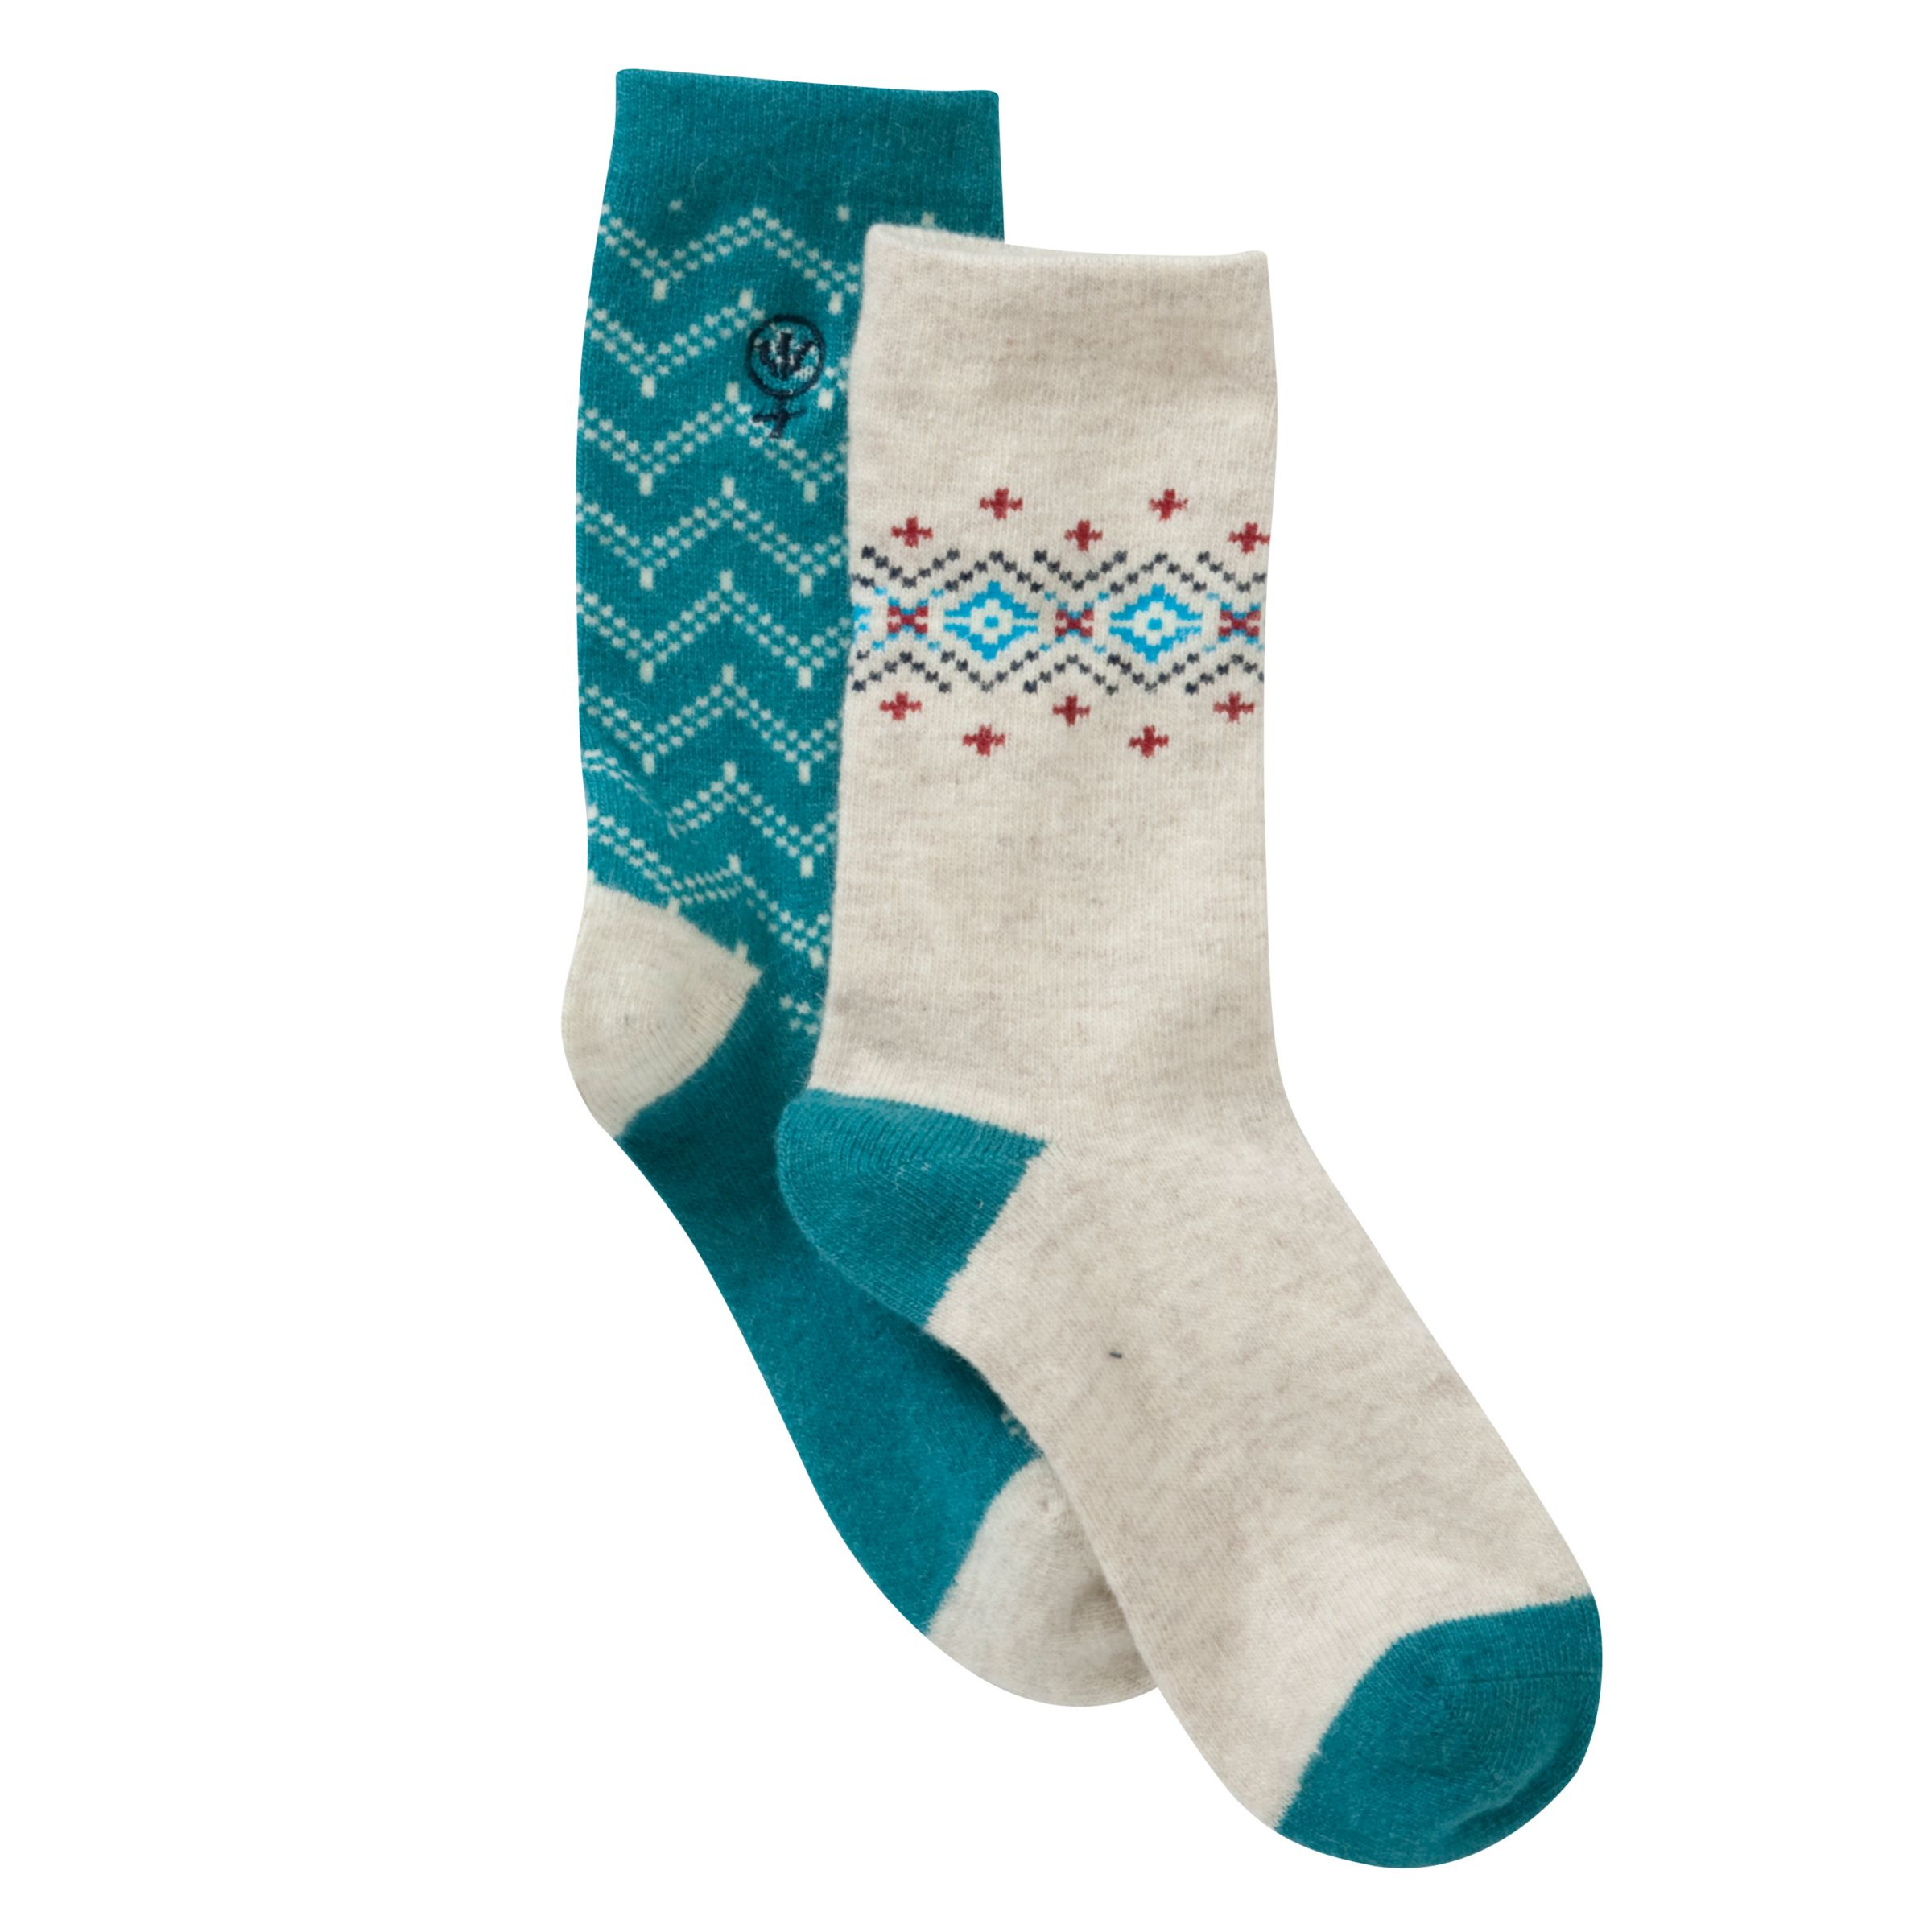 Fat Face Angora Fairisle Socks, 2 Pack, Teal